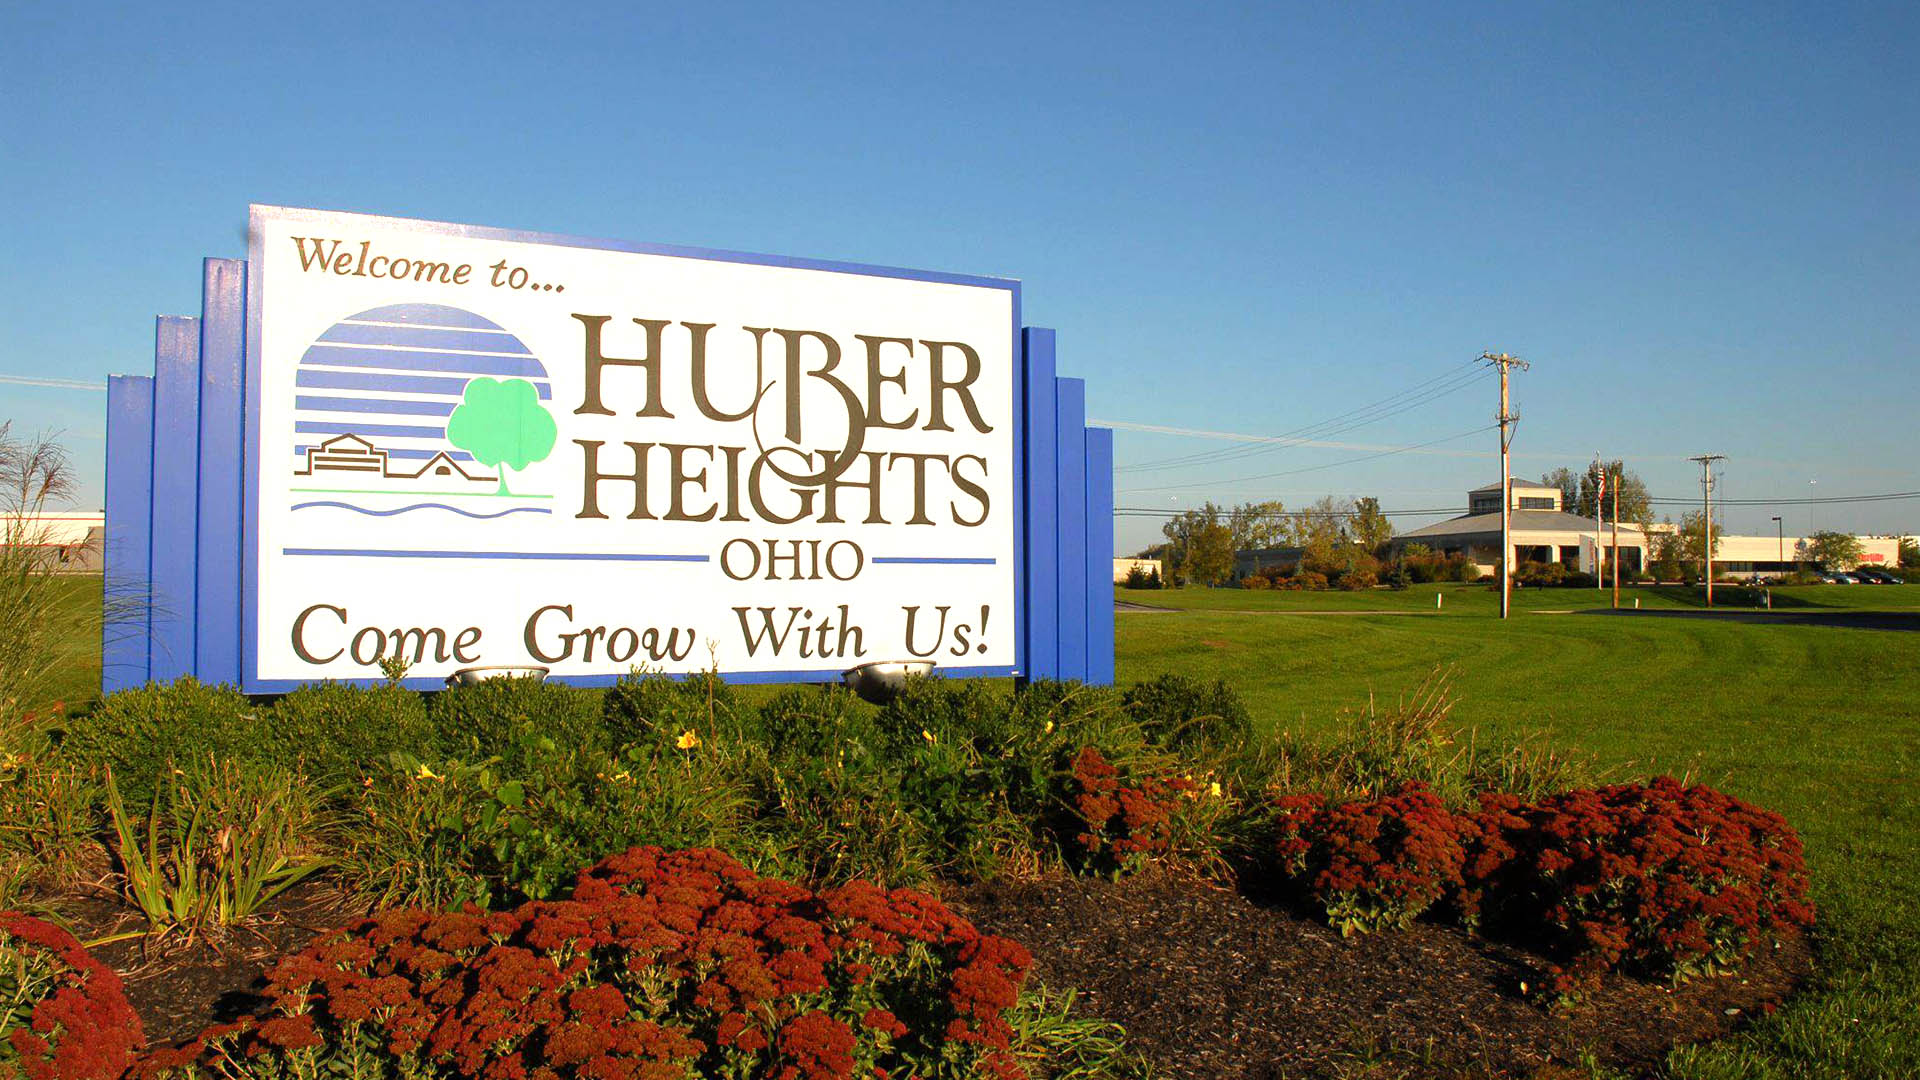 City of Huber Heights